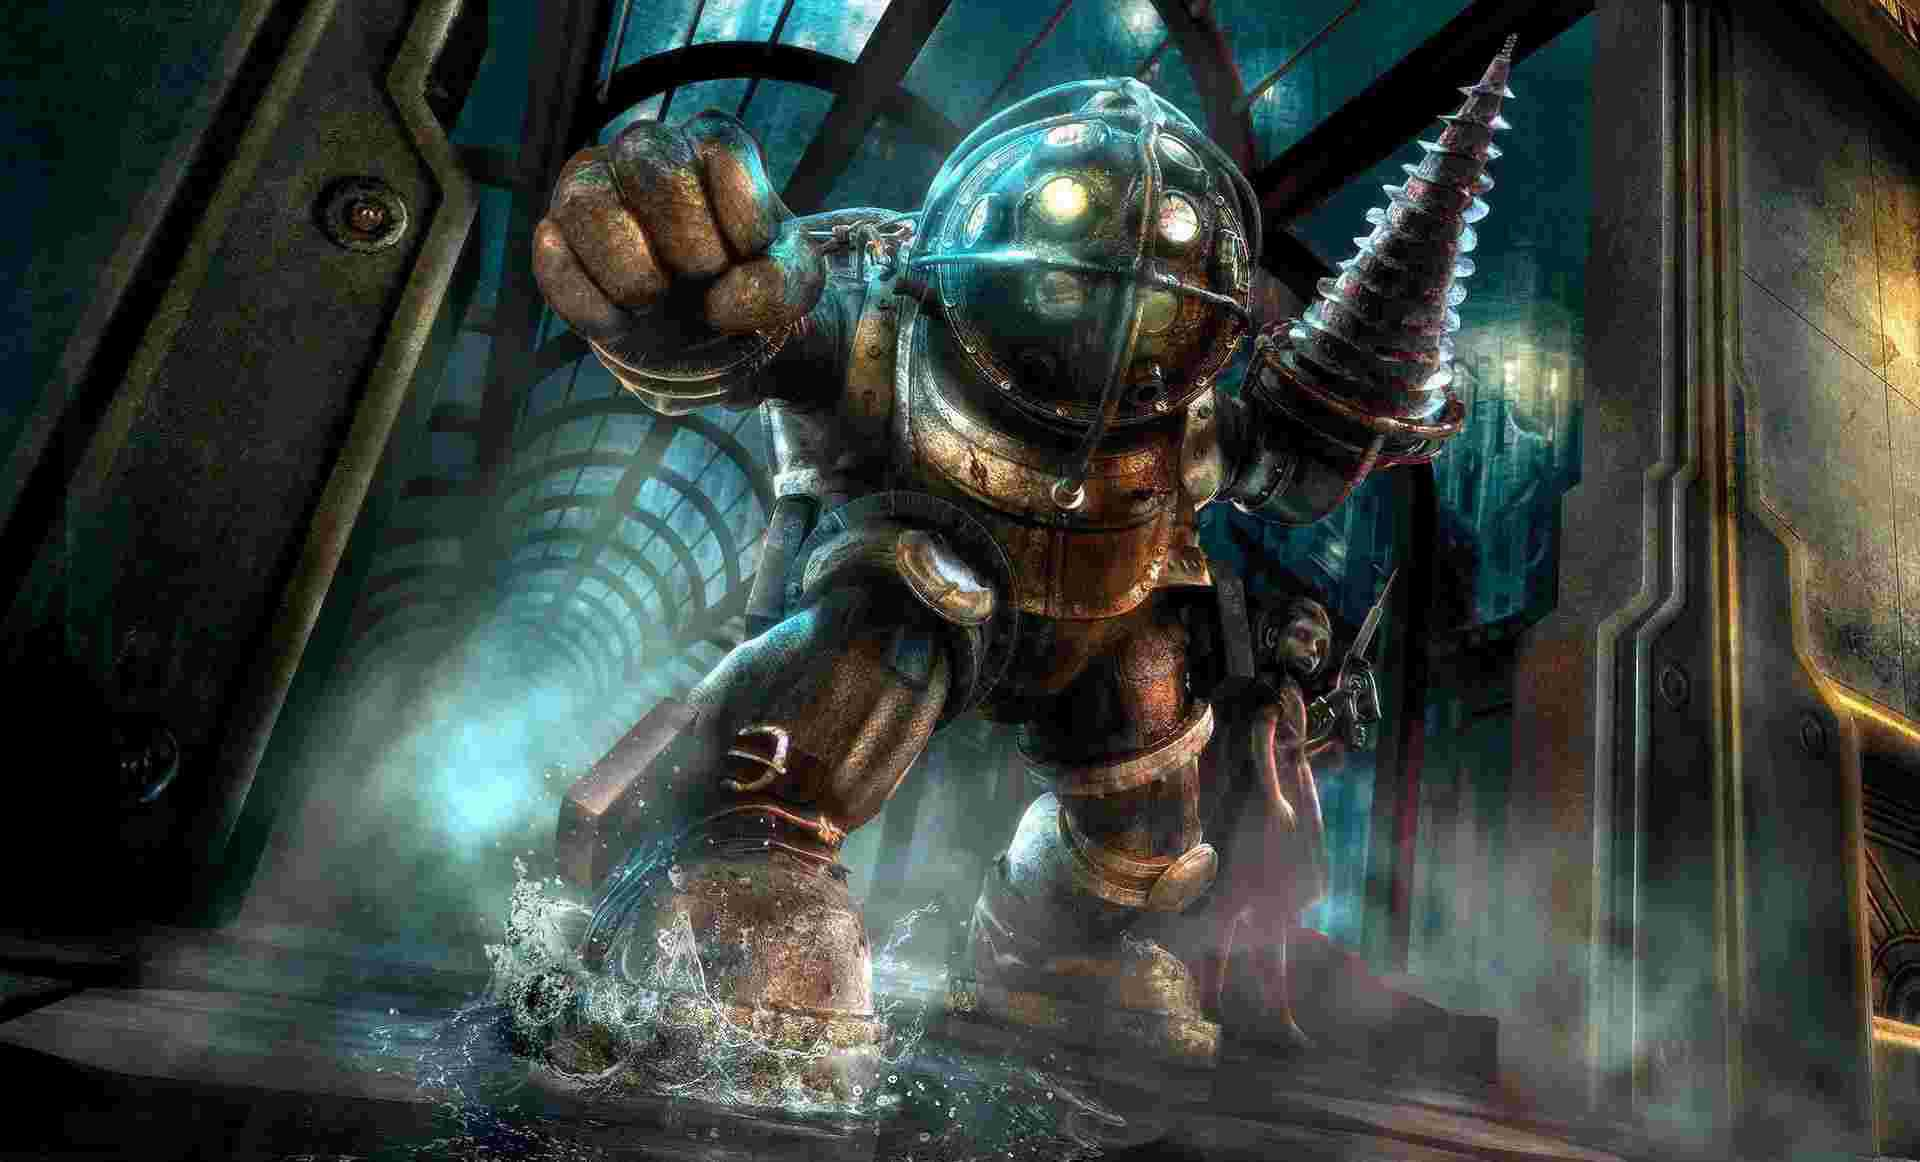 Bioshock Wallpaper Pack